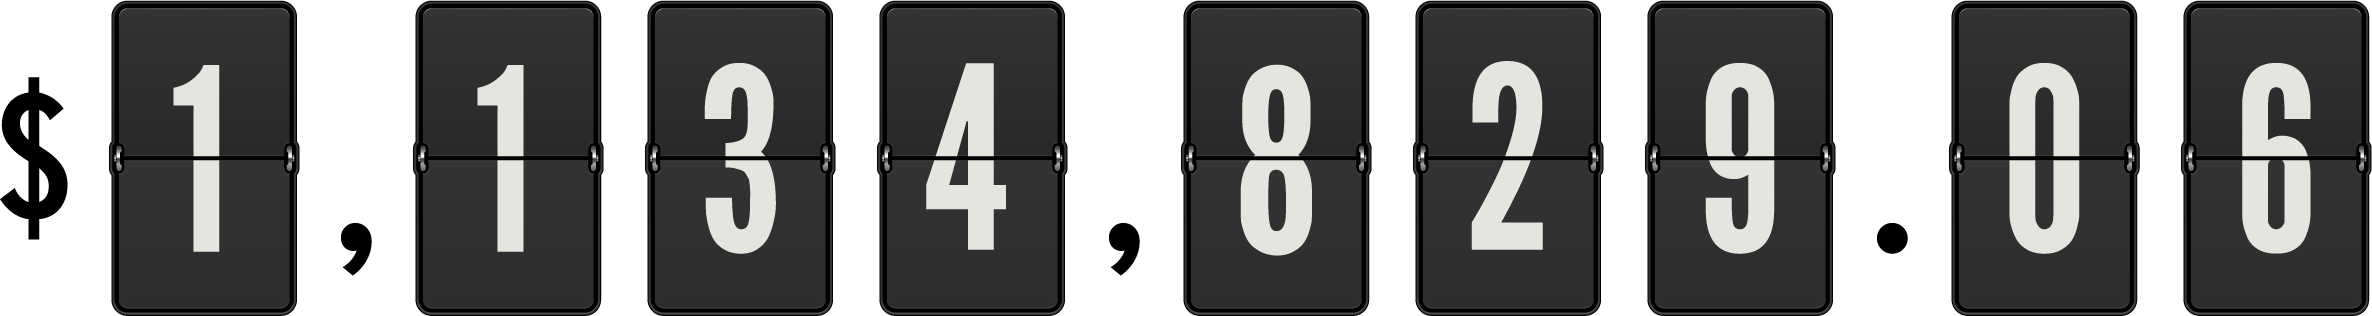 number counter.png